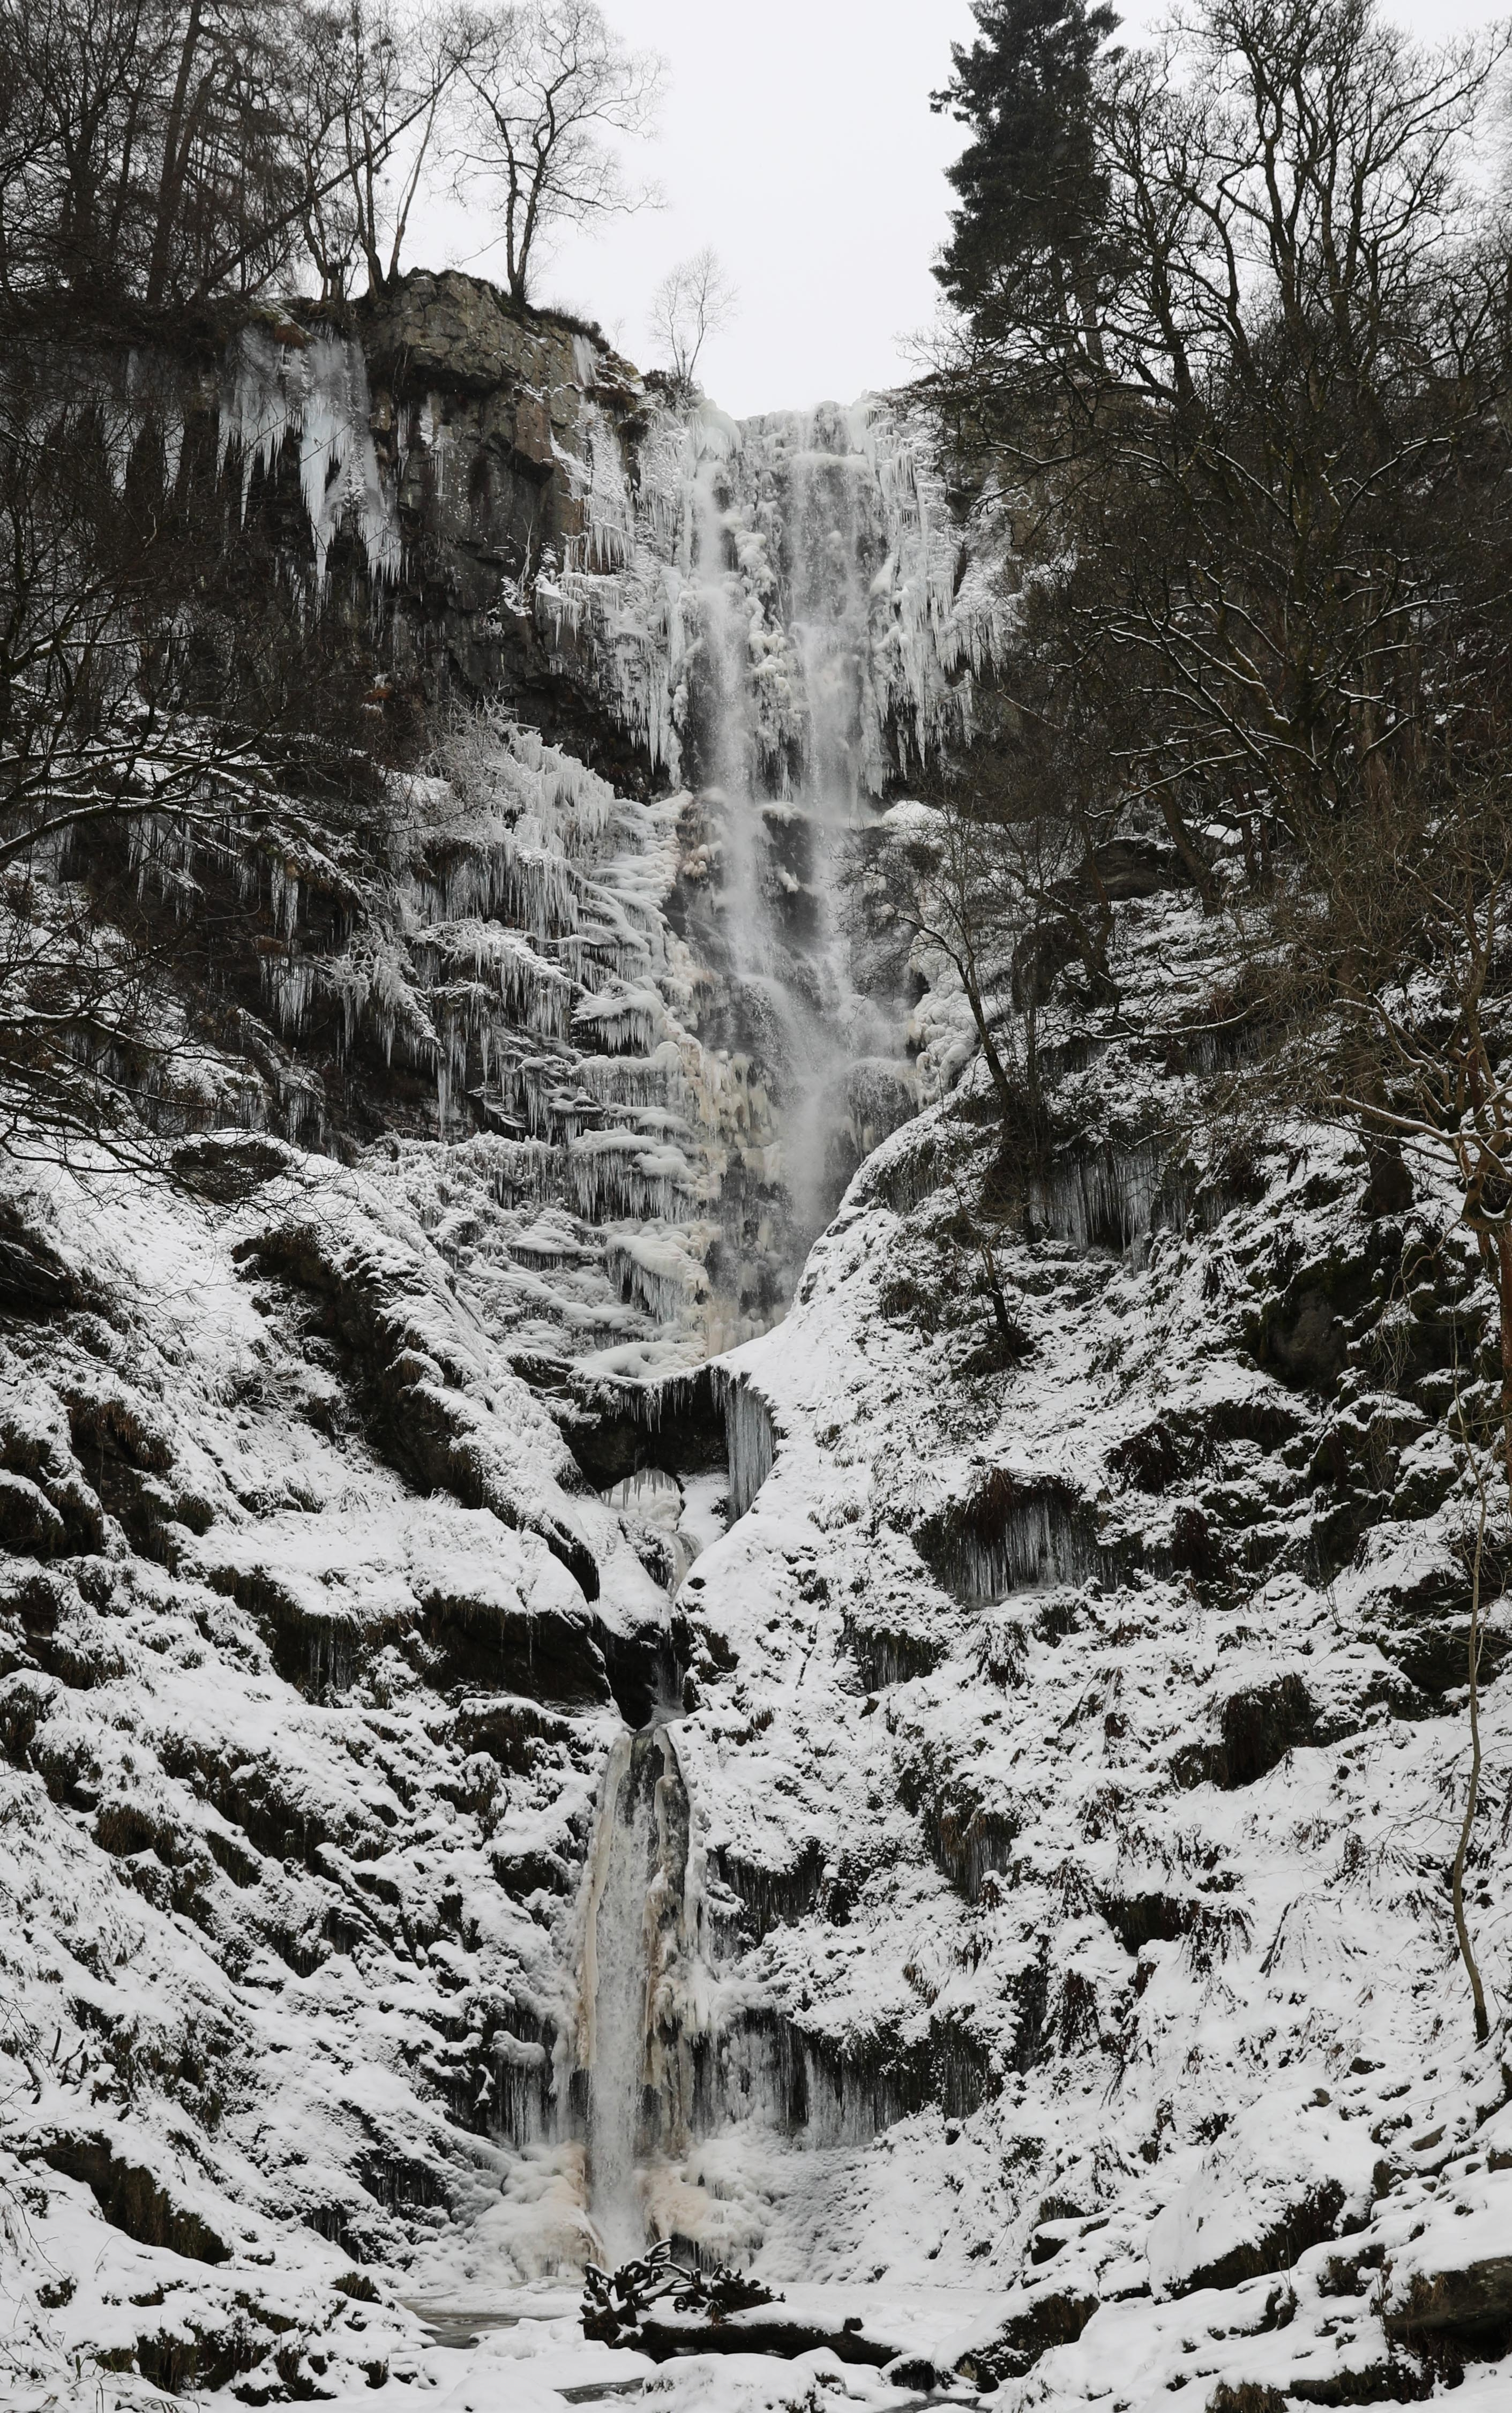 waterfall iced over this winter